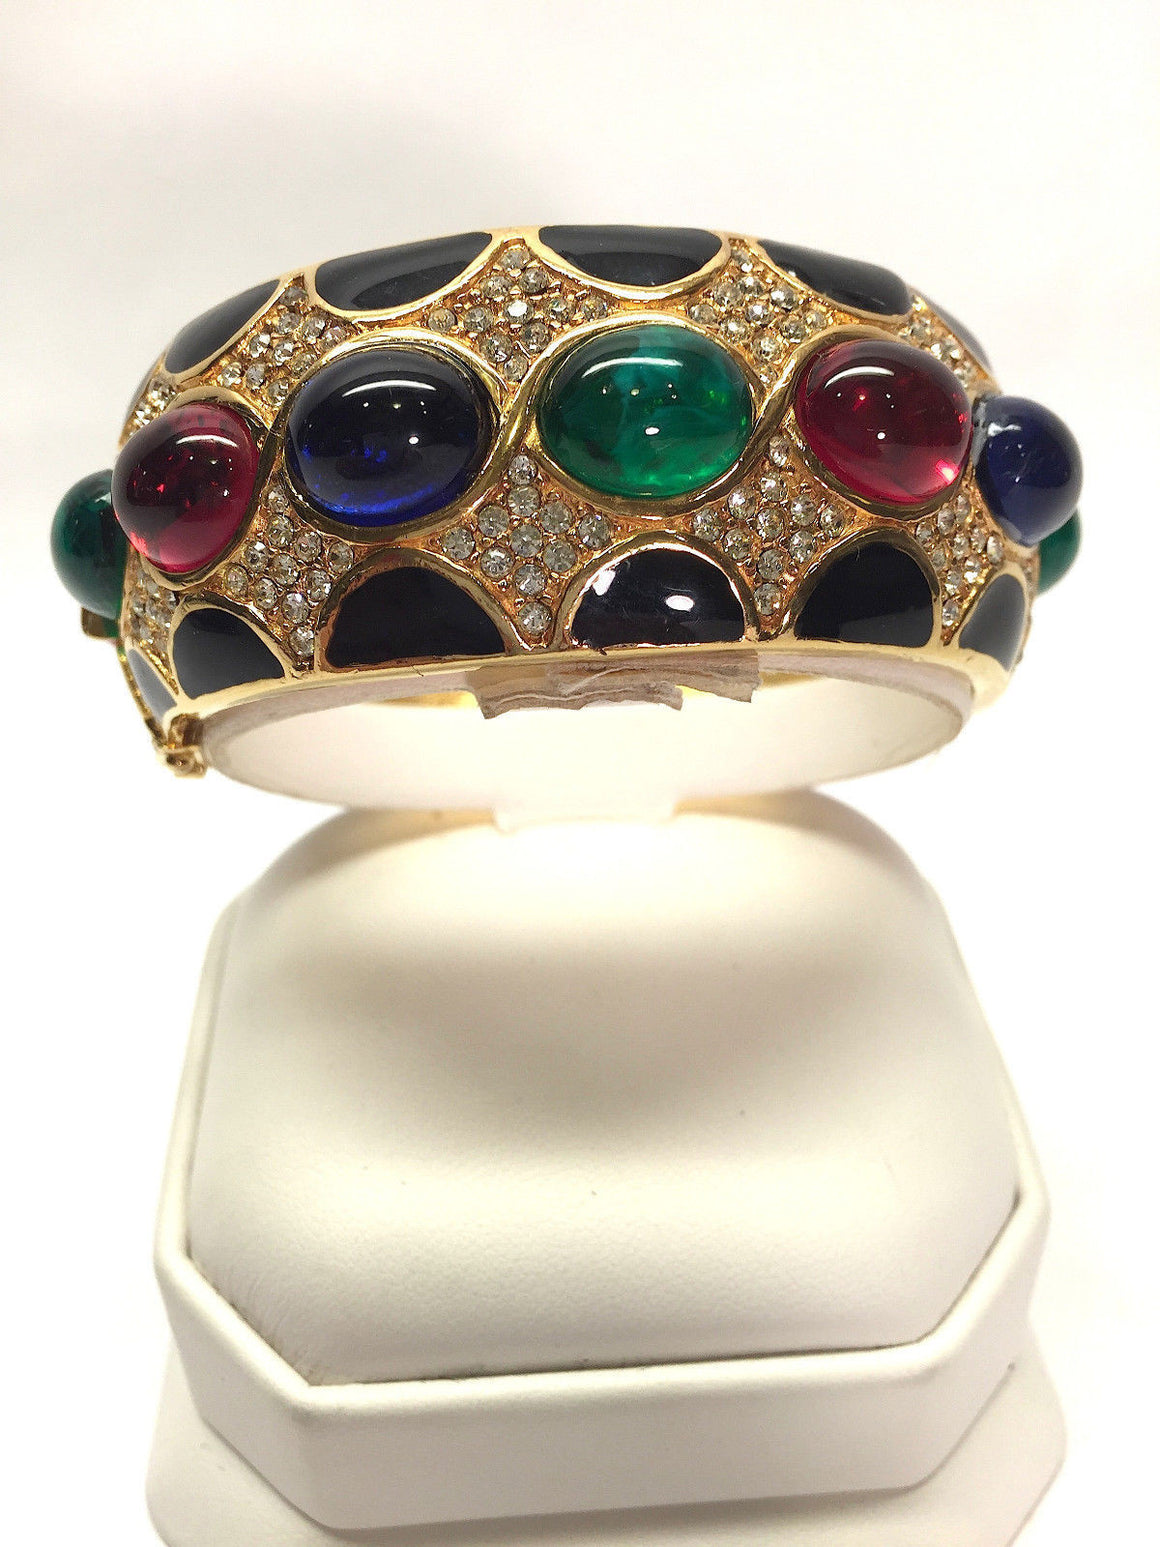 bisbiz.com CINER Vintage Clear Crystal-Pave Ruby Emerald Sapphire Cabochon Glass Stones Bangle Bracelet - Bis Luxury Resale